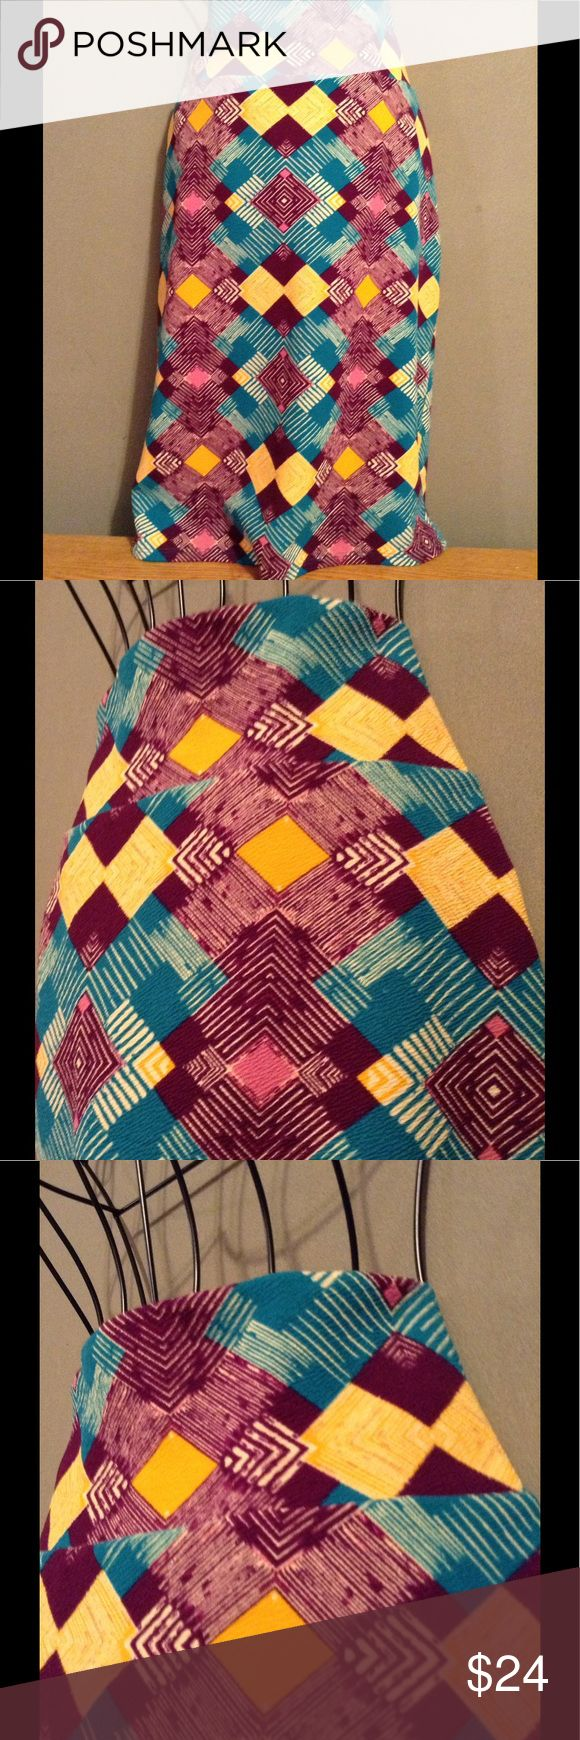 NWOT LLR Cassie Skirt Never worn. Gorgeous pattern with vibrant colors. NWOT and a total steal! LuLaRoe Skirts Midi